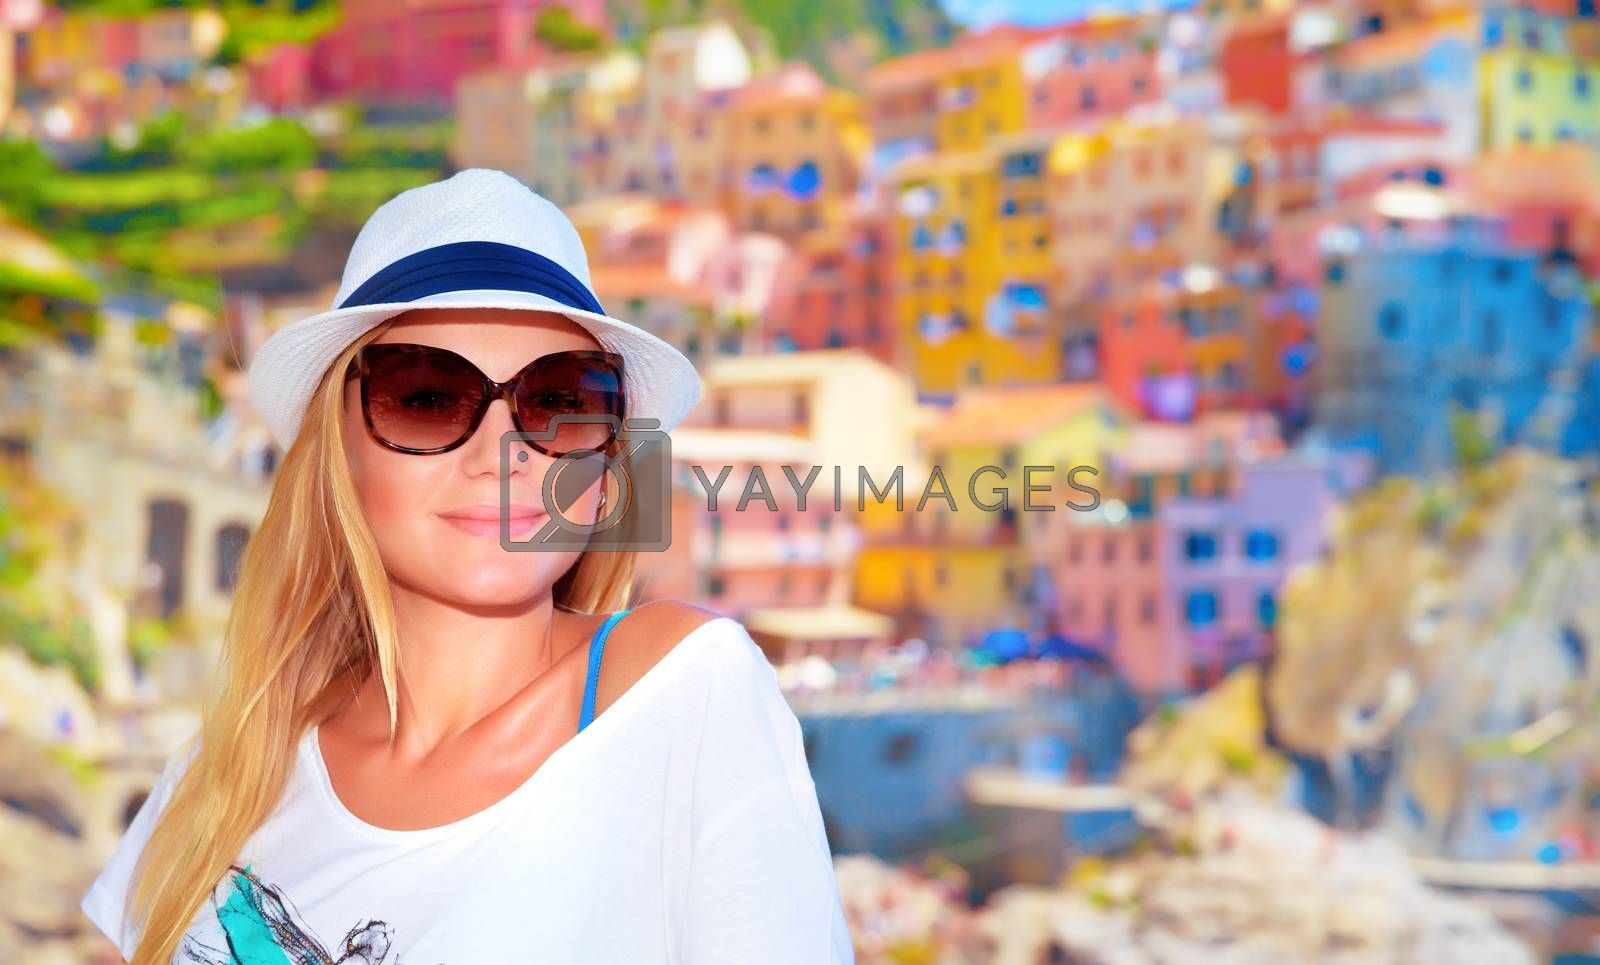 Attractive girl enjoying travel to Europe, standing on wonderful colorful buildings background, famous street in Cinque Terre